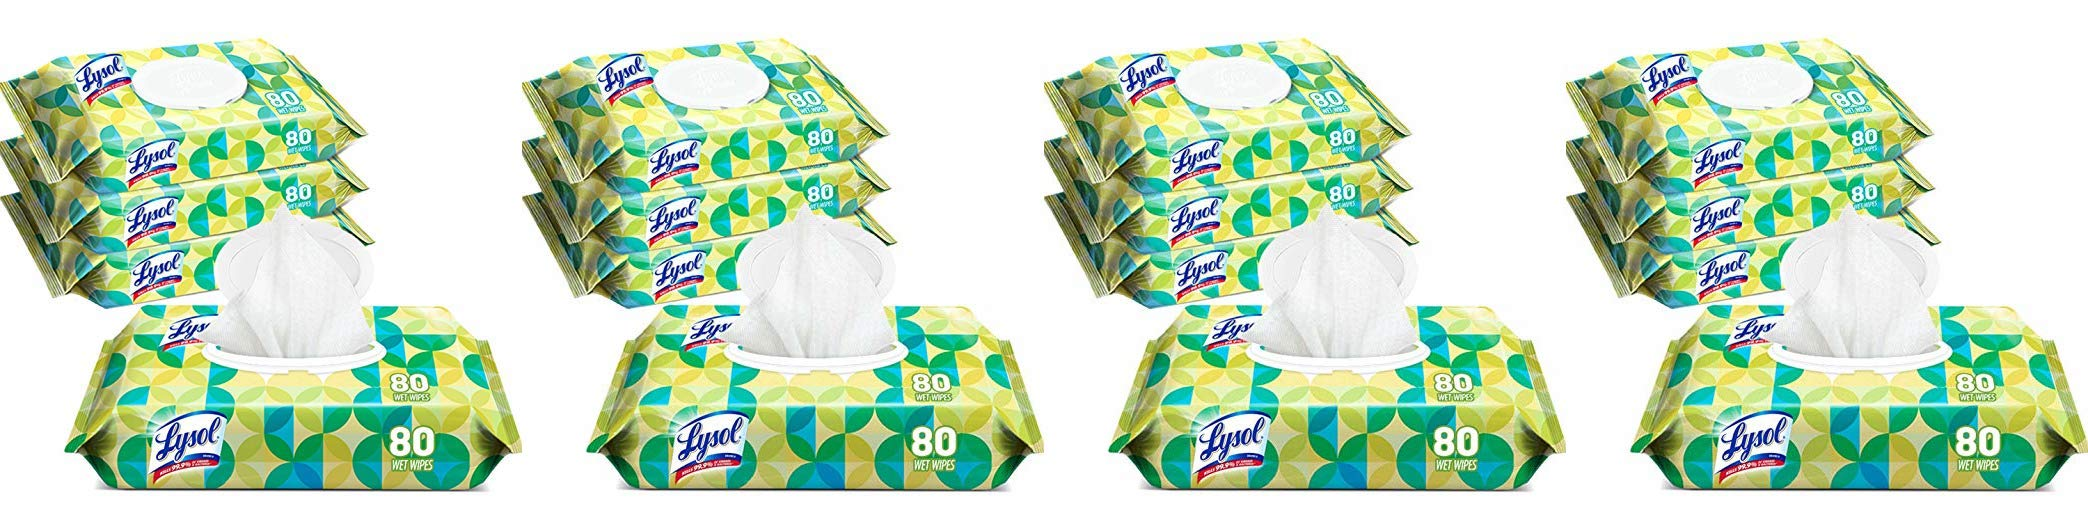 Lysol Handi-Pack Disinfecting Wipes, 320ct (4X80ct), Cool Country Breeze - 4 Pack